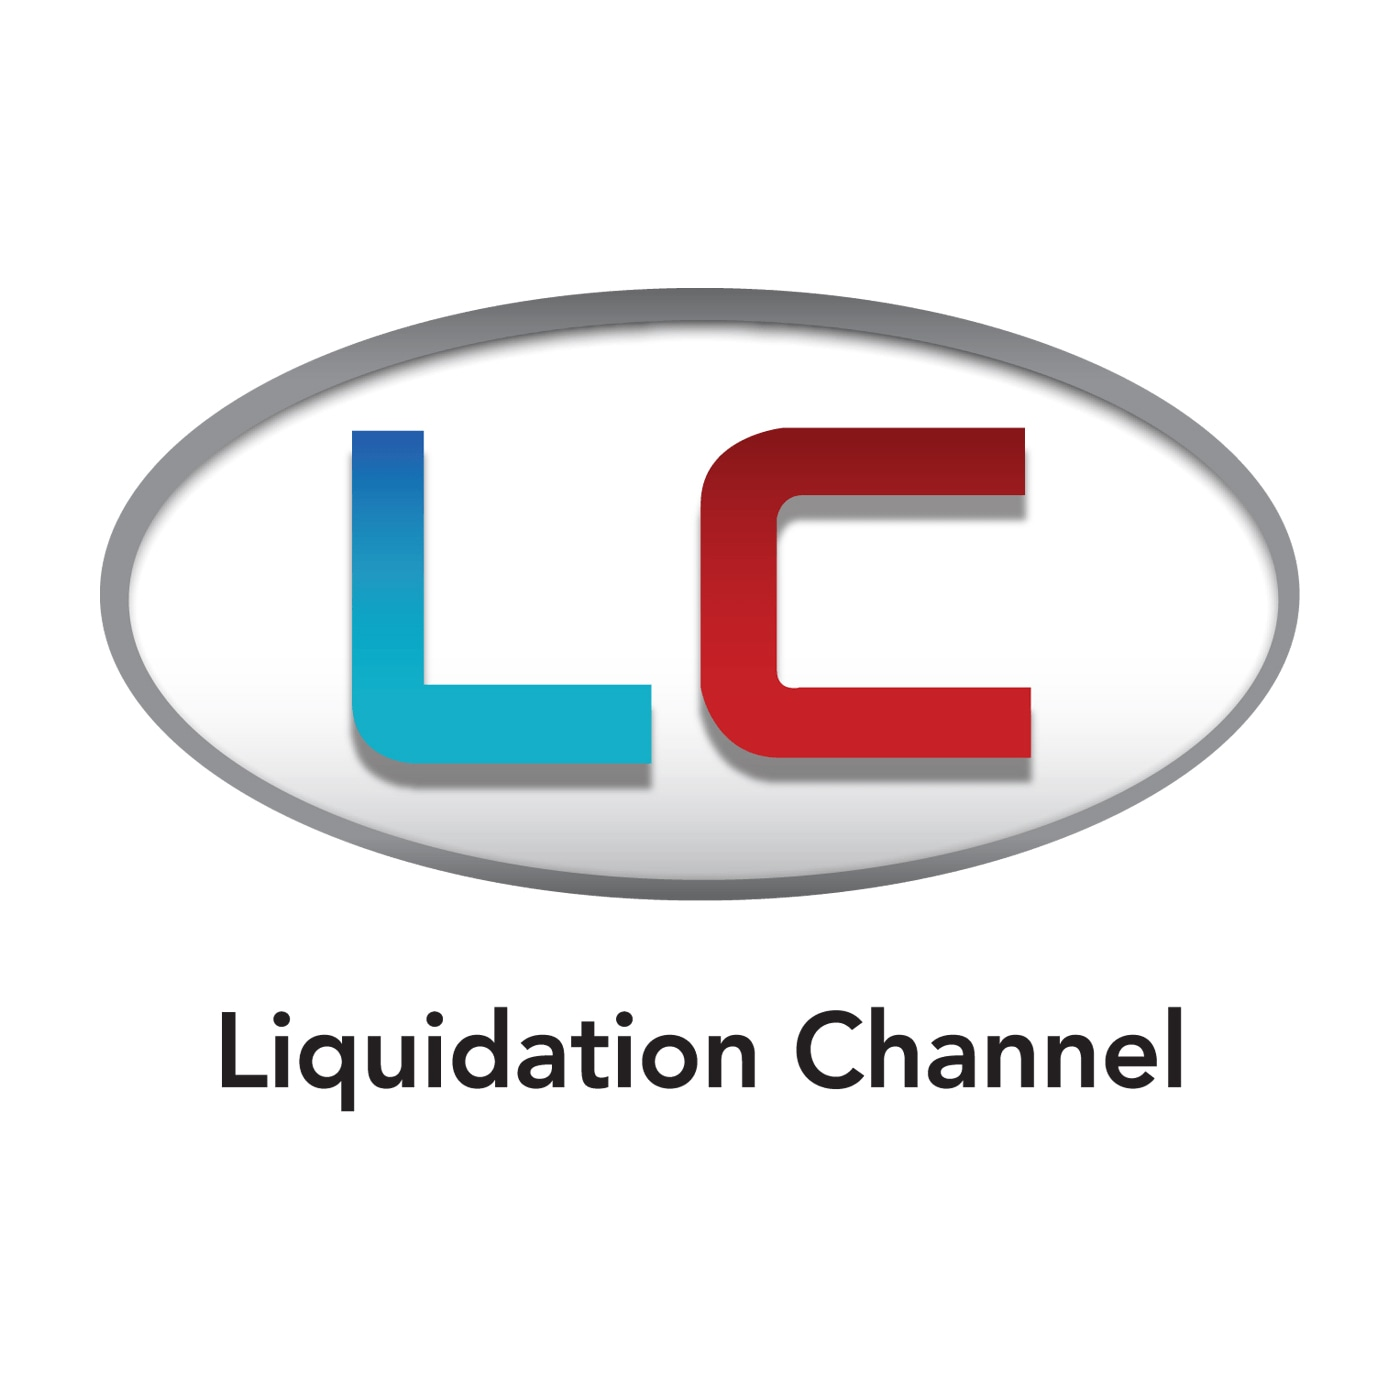 Shop liquidationchannel.com